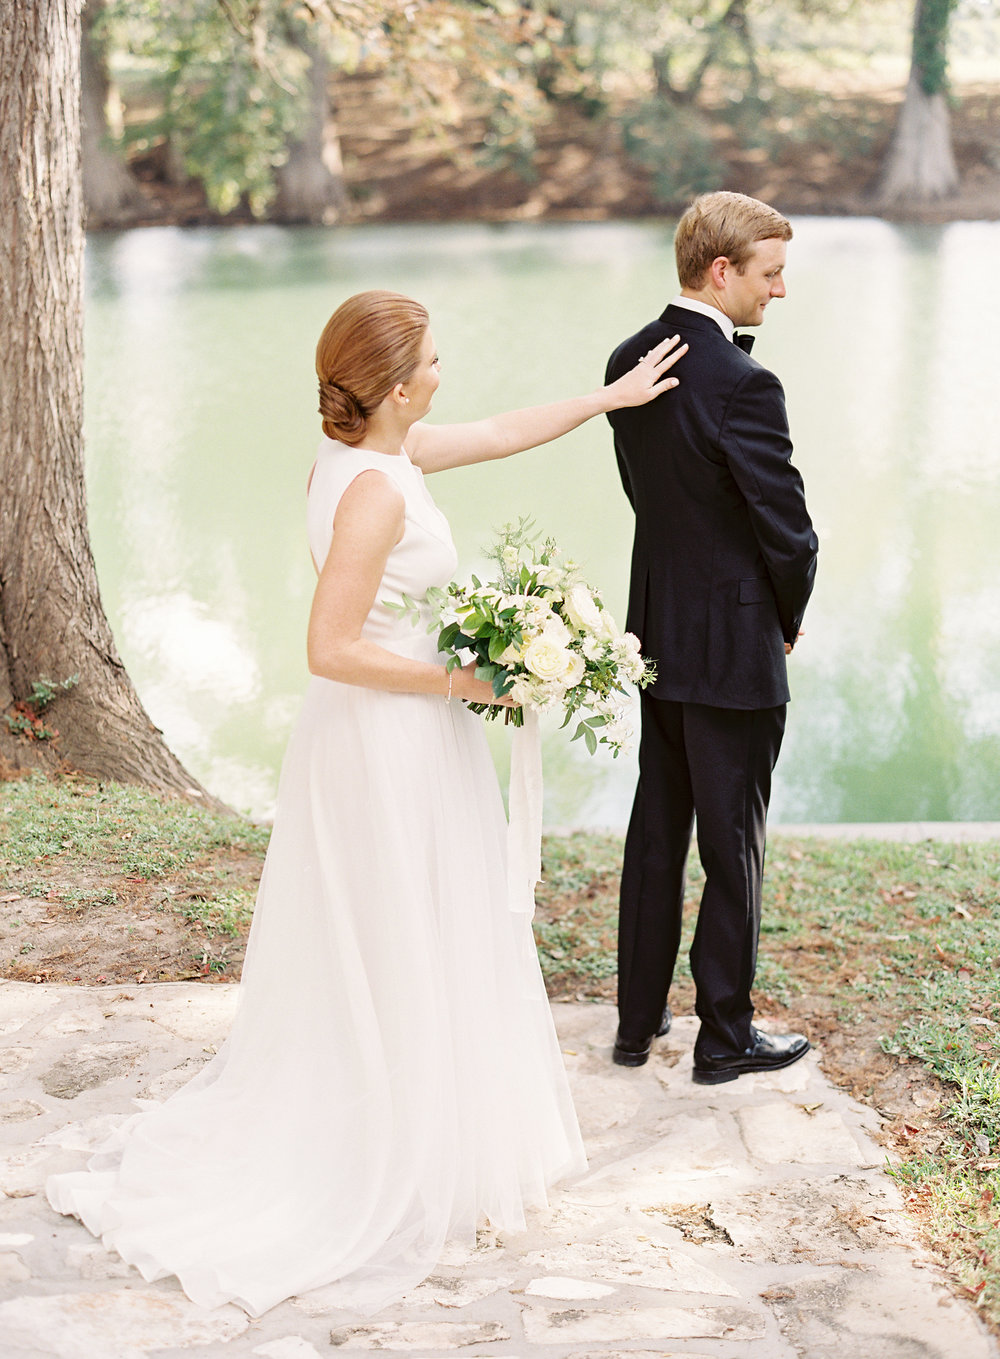 Black & White Hill Country Wedding - Lindsey Brunk